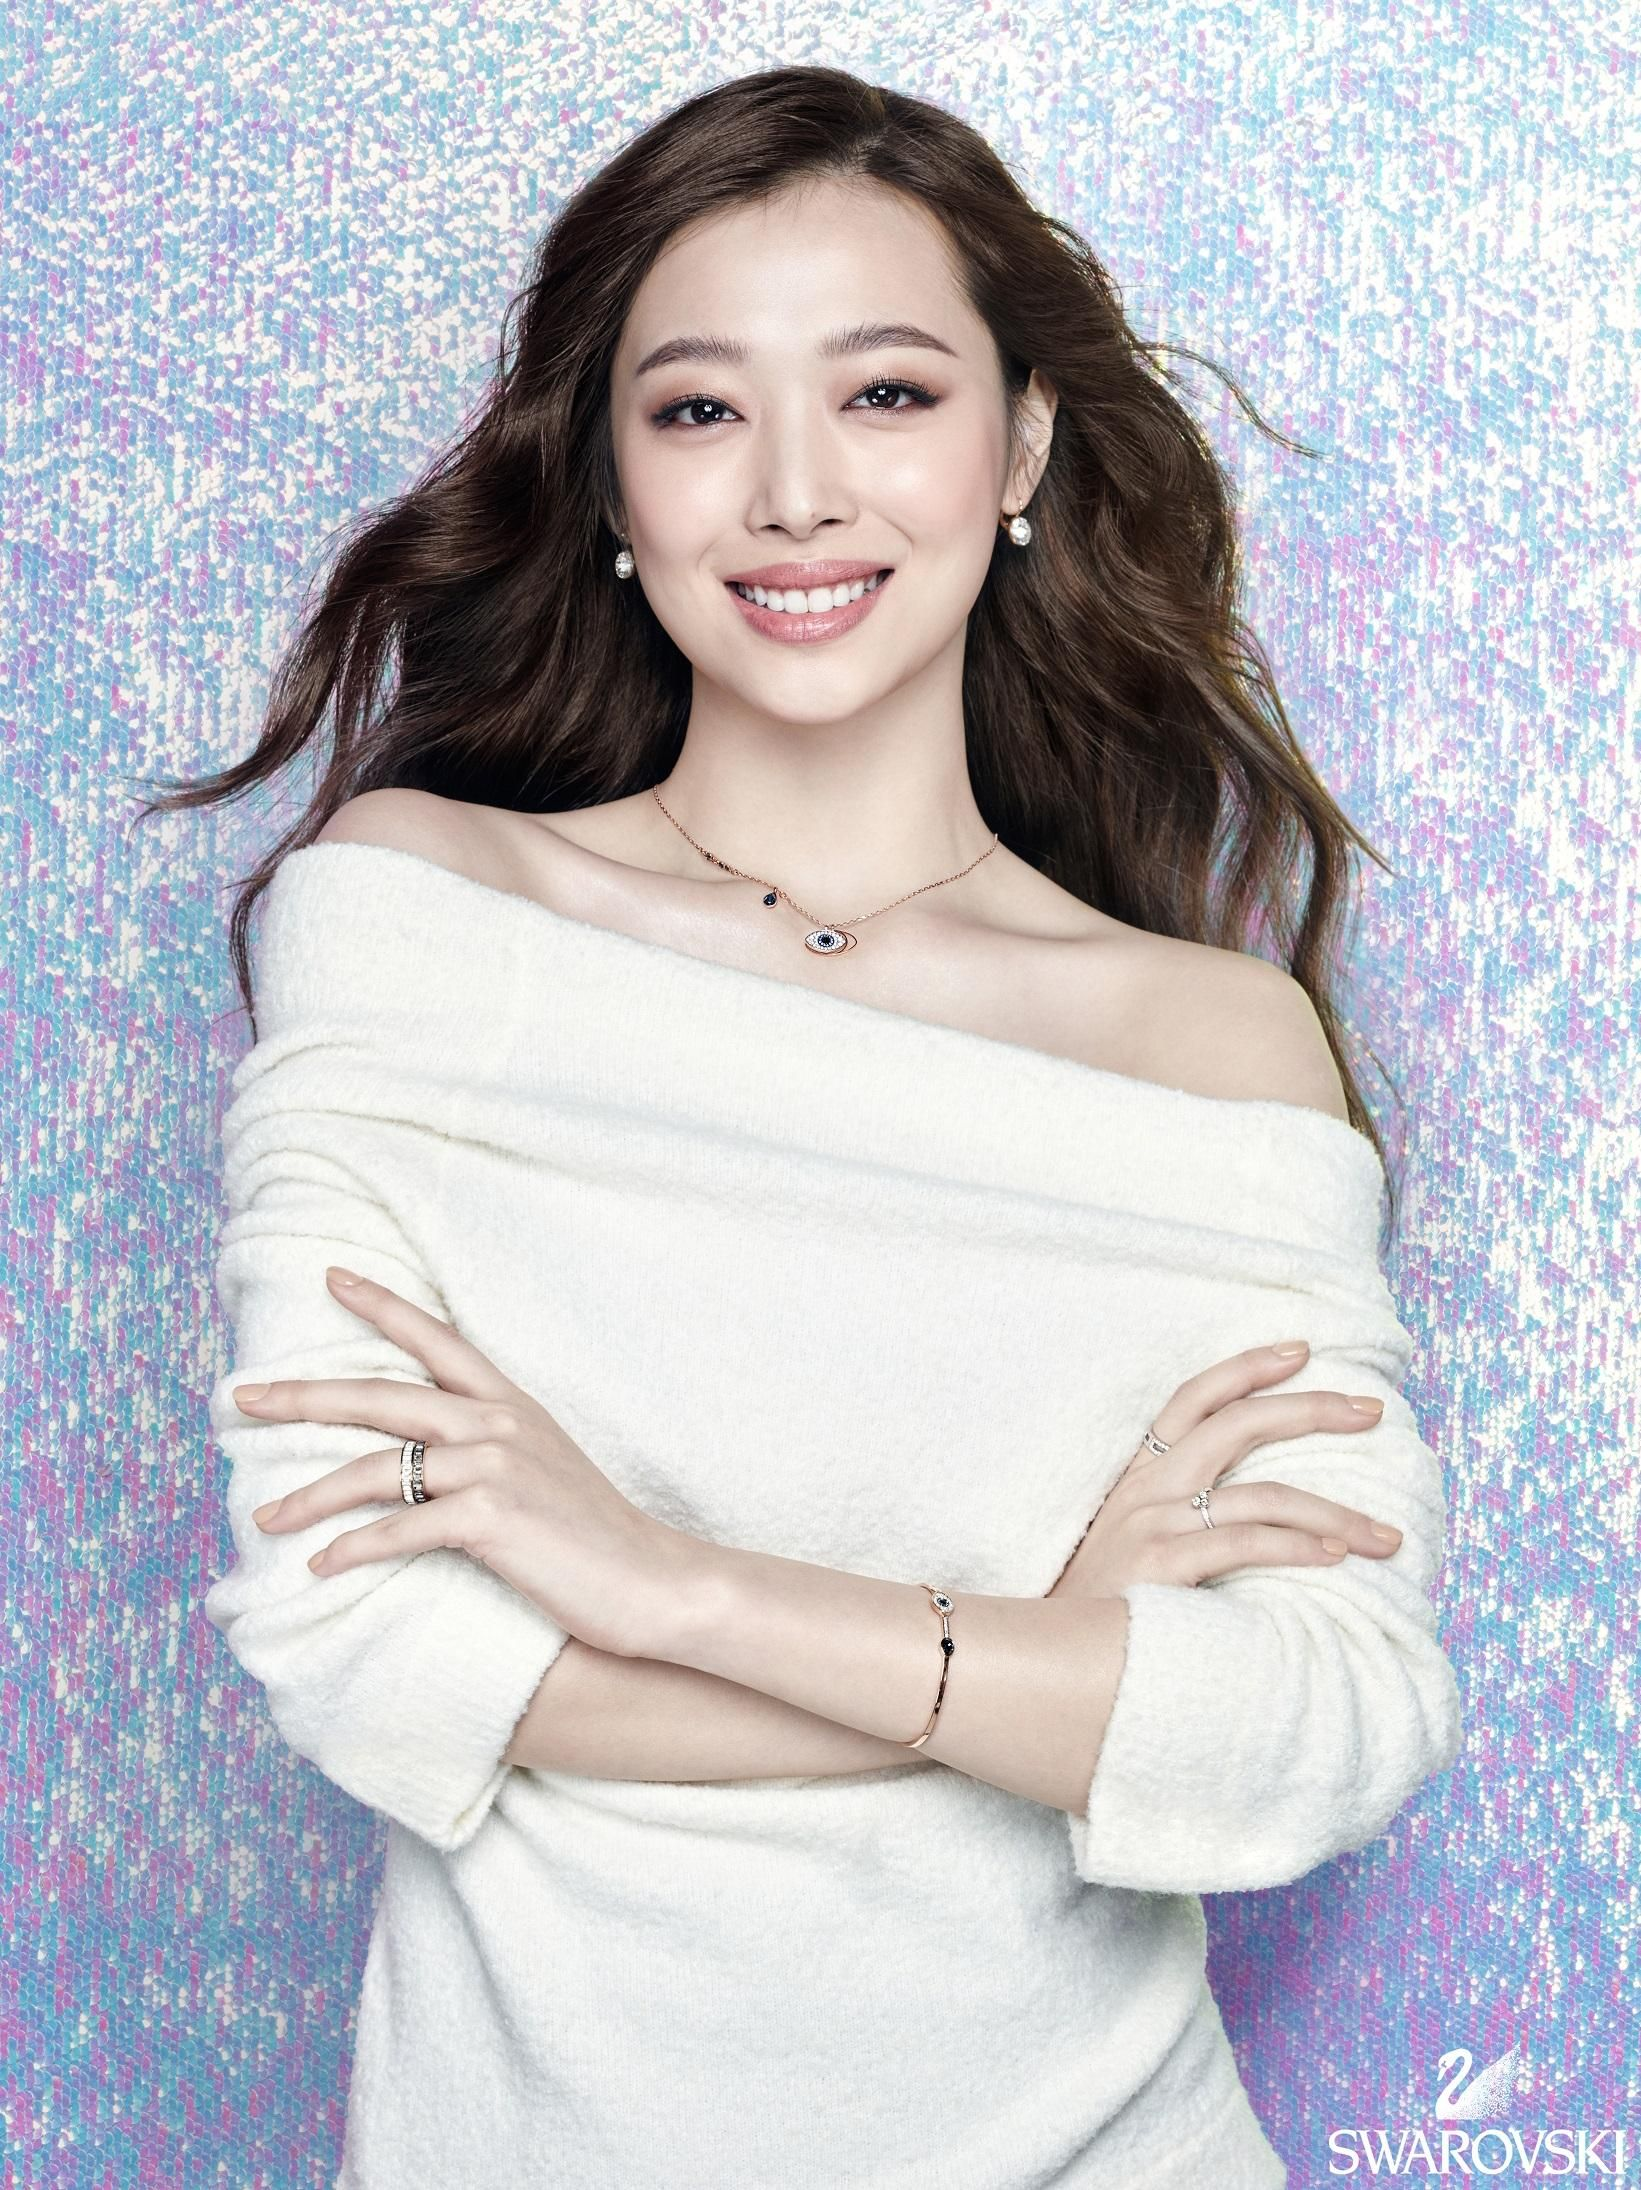 sulli is sophisticated in 'swarovski' for mature pictorial! | koogle